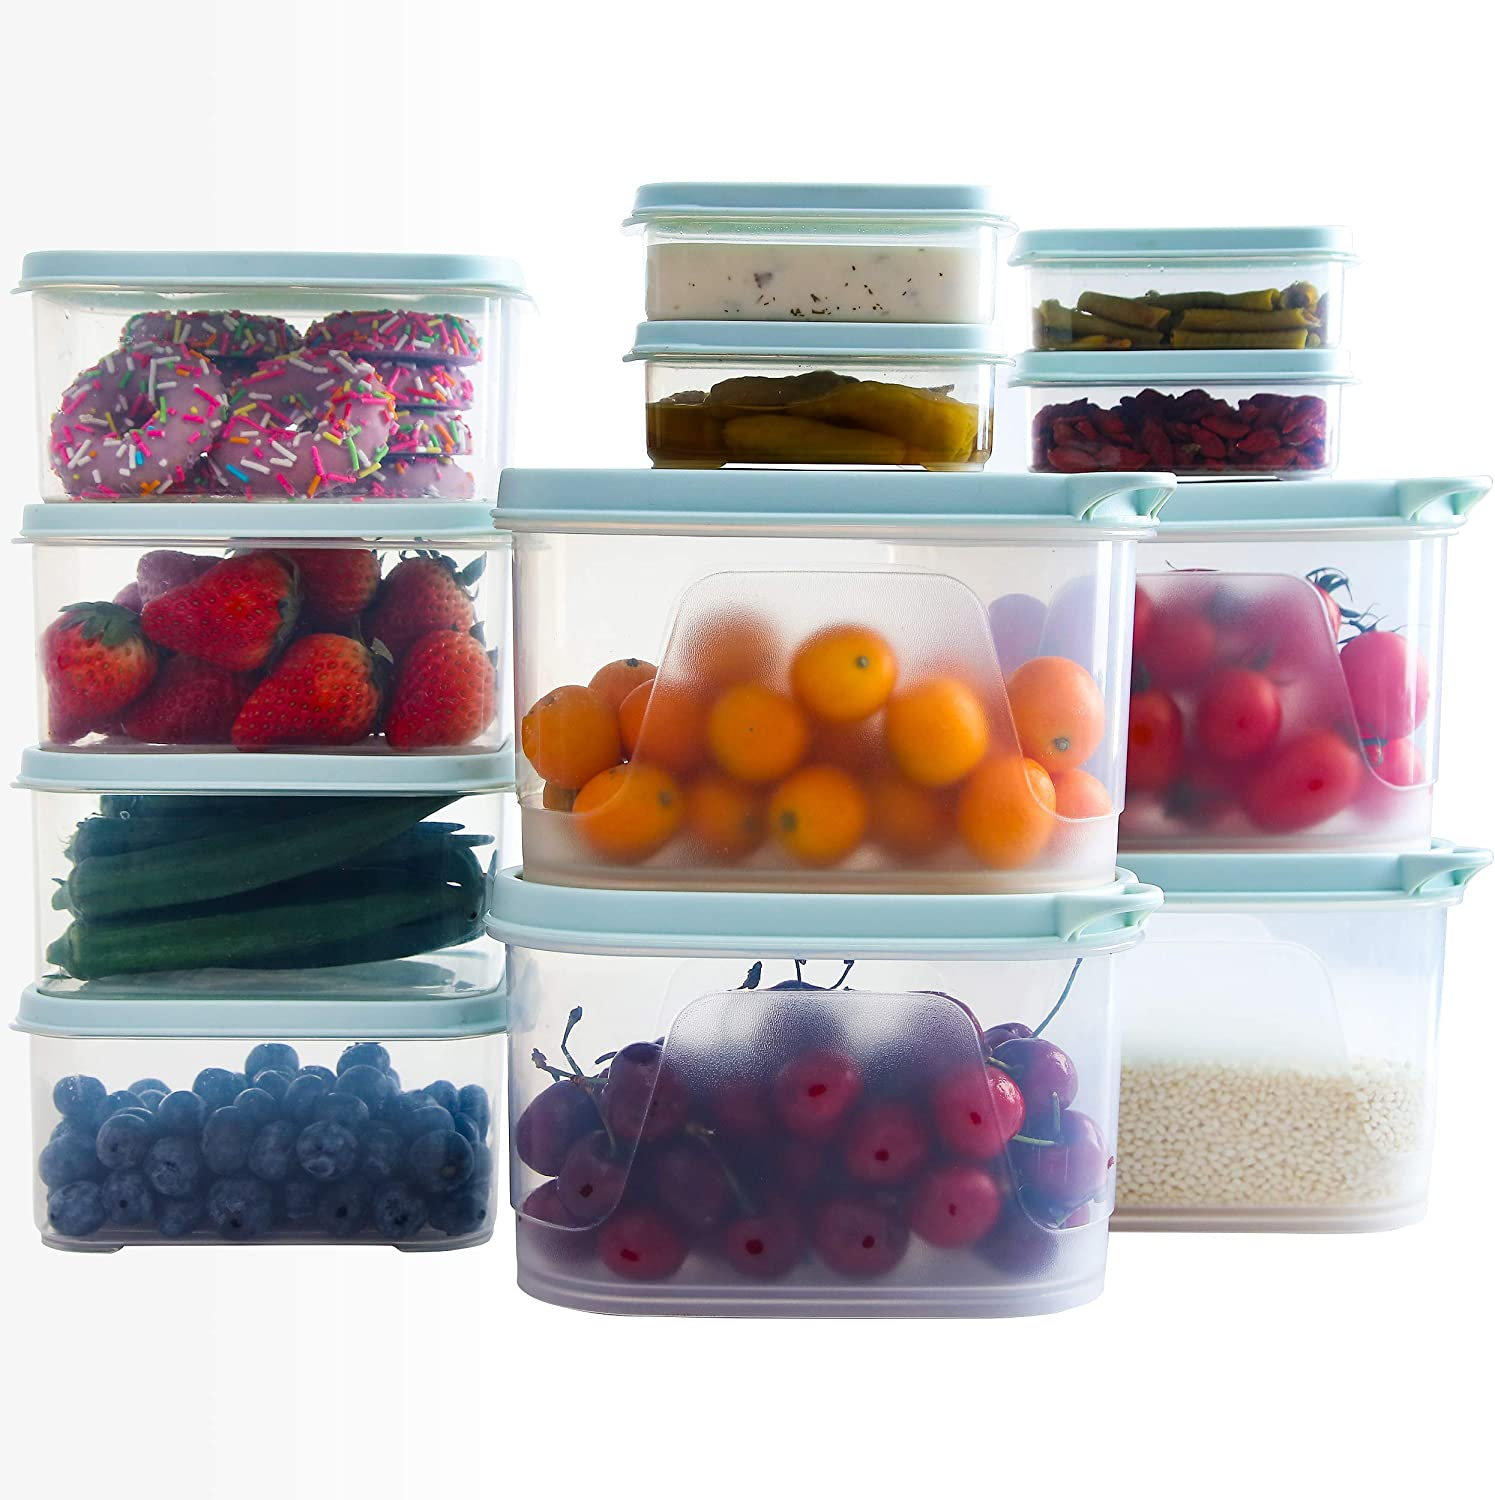 Citylife 12 Sets Food Storage Containers 38oz, 32oz, 6oz Plastic Food Containers with Lids Airtight Freezer Containers Microwaveable Dishwasher Safe